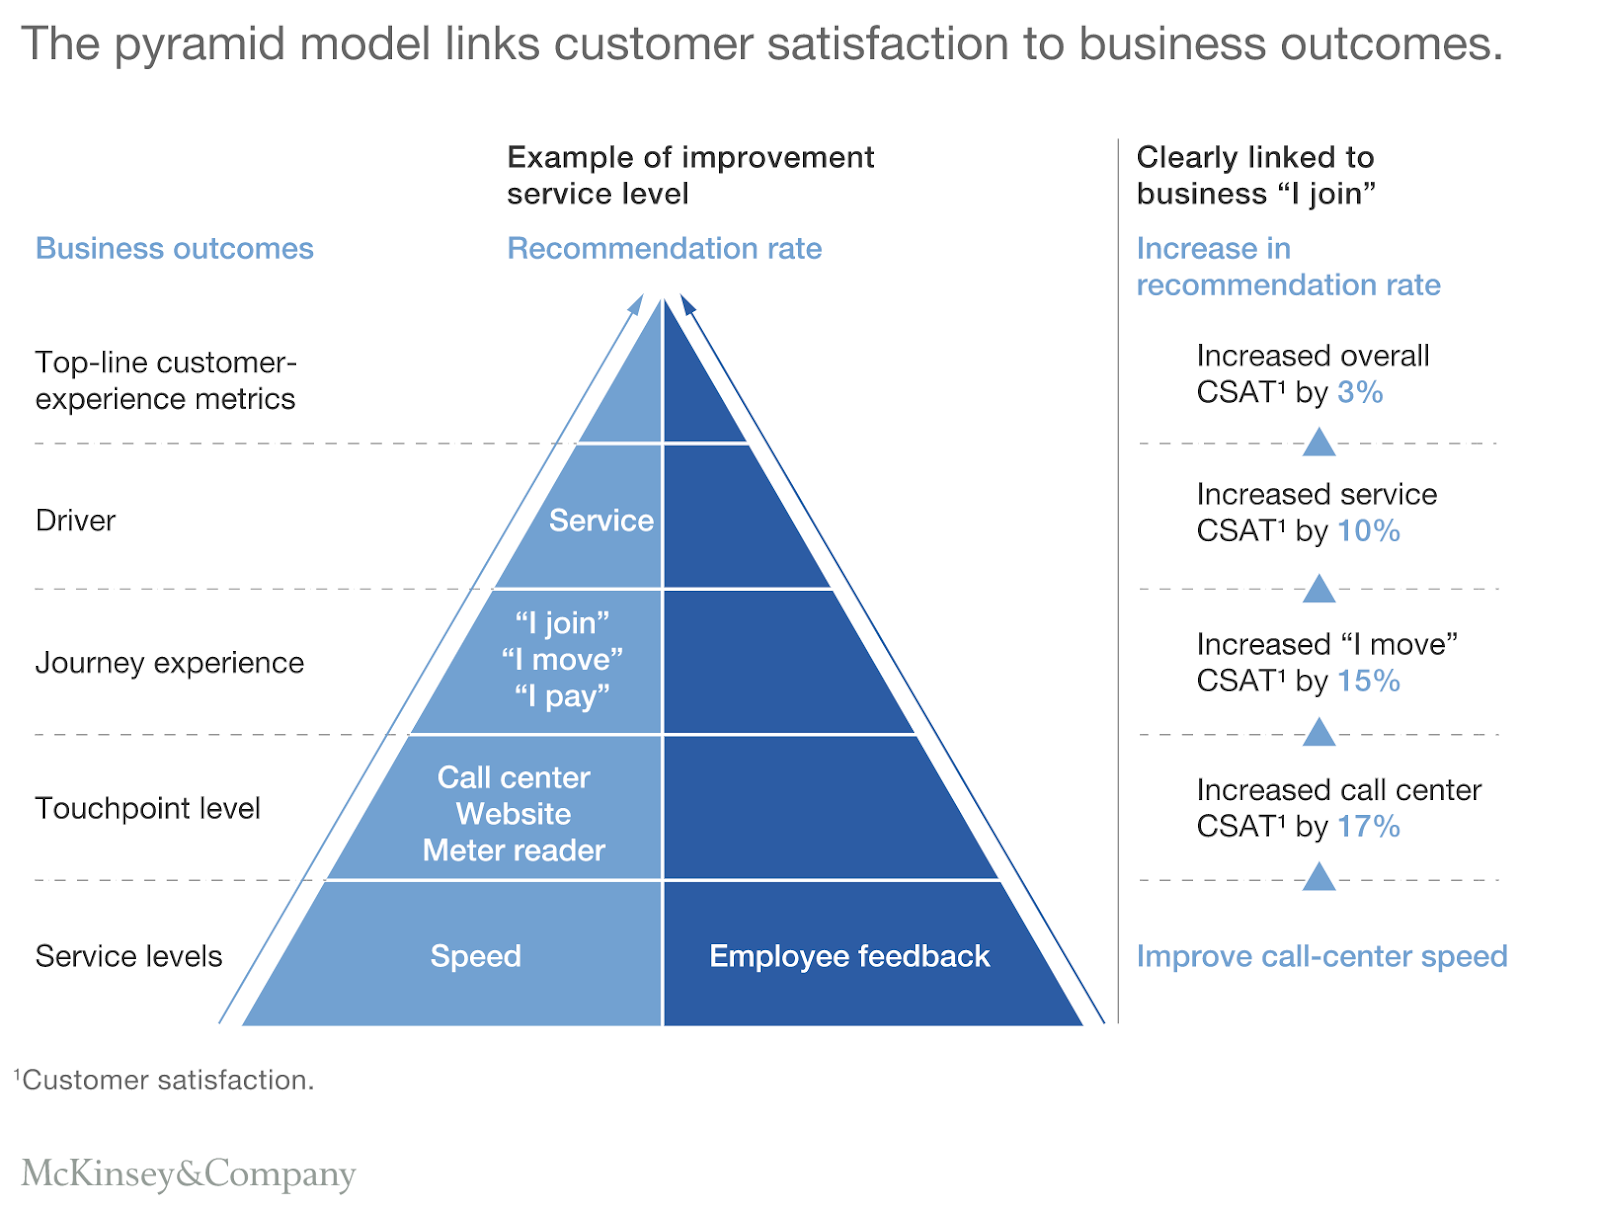 Pyramid depicting relationship of customer satisfaction and business models